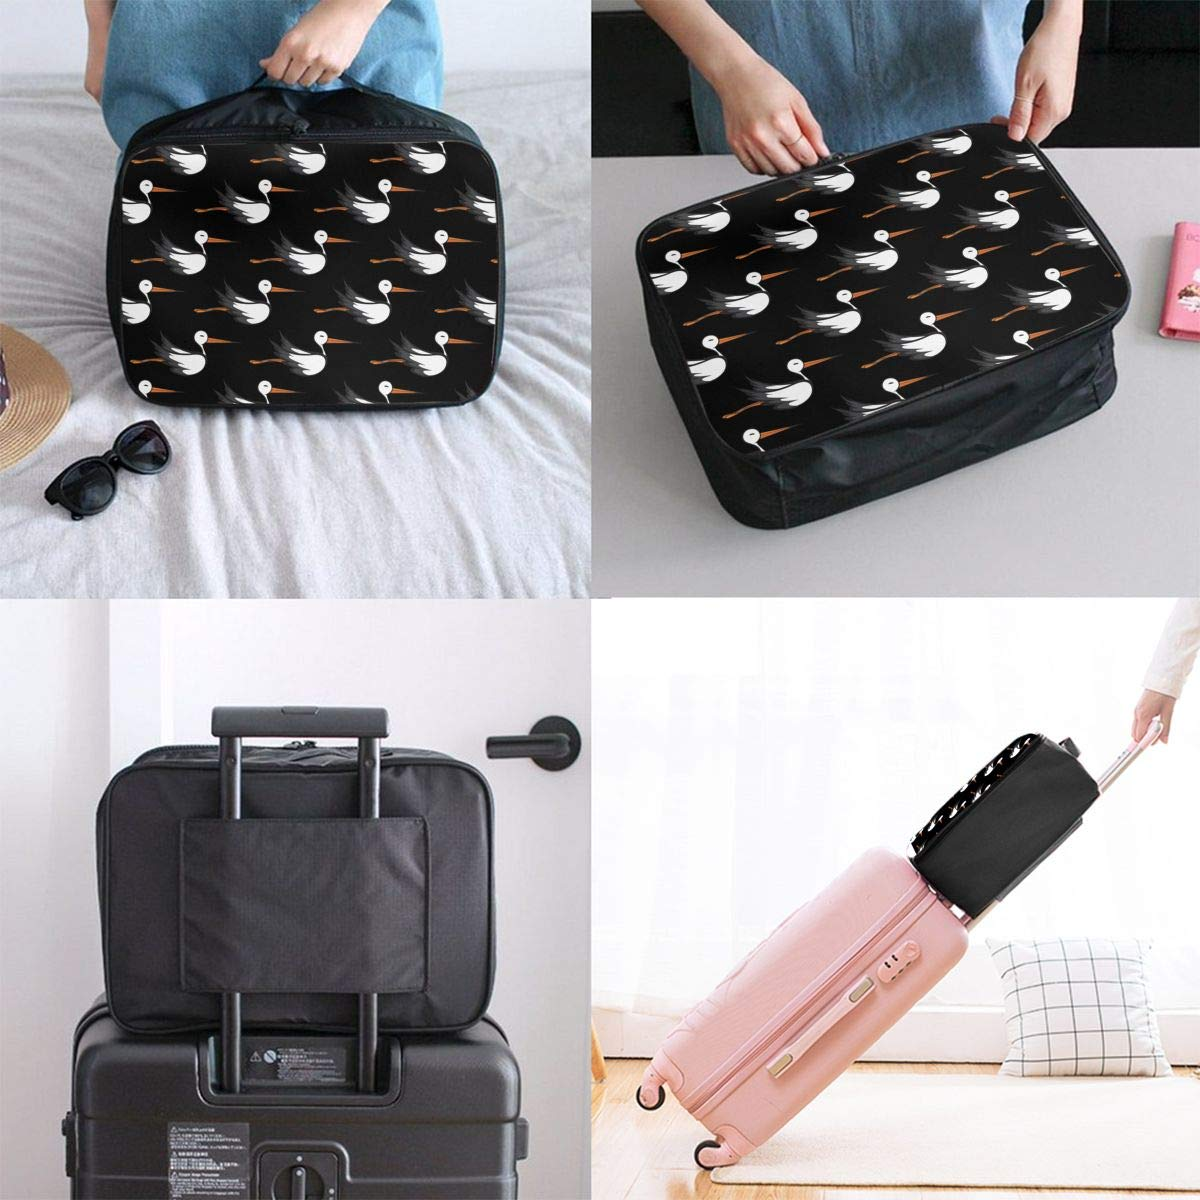 YueLJB Flying Stork Pattern Lightweight Large Capacity Portable Luggage Bag Travel Duffel Bag Storage Carry Luggage Duffle Tote Bag